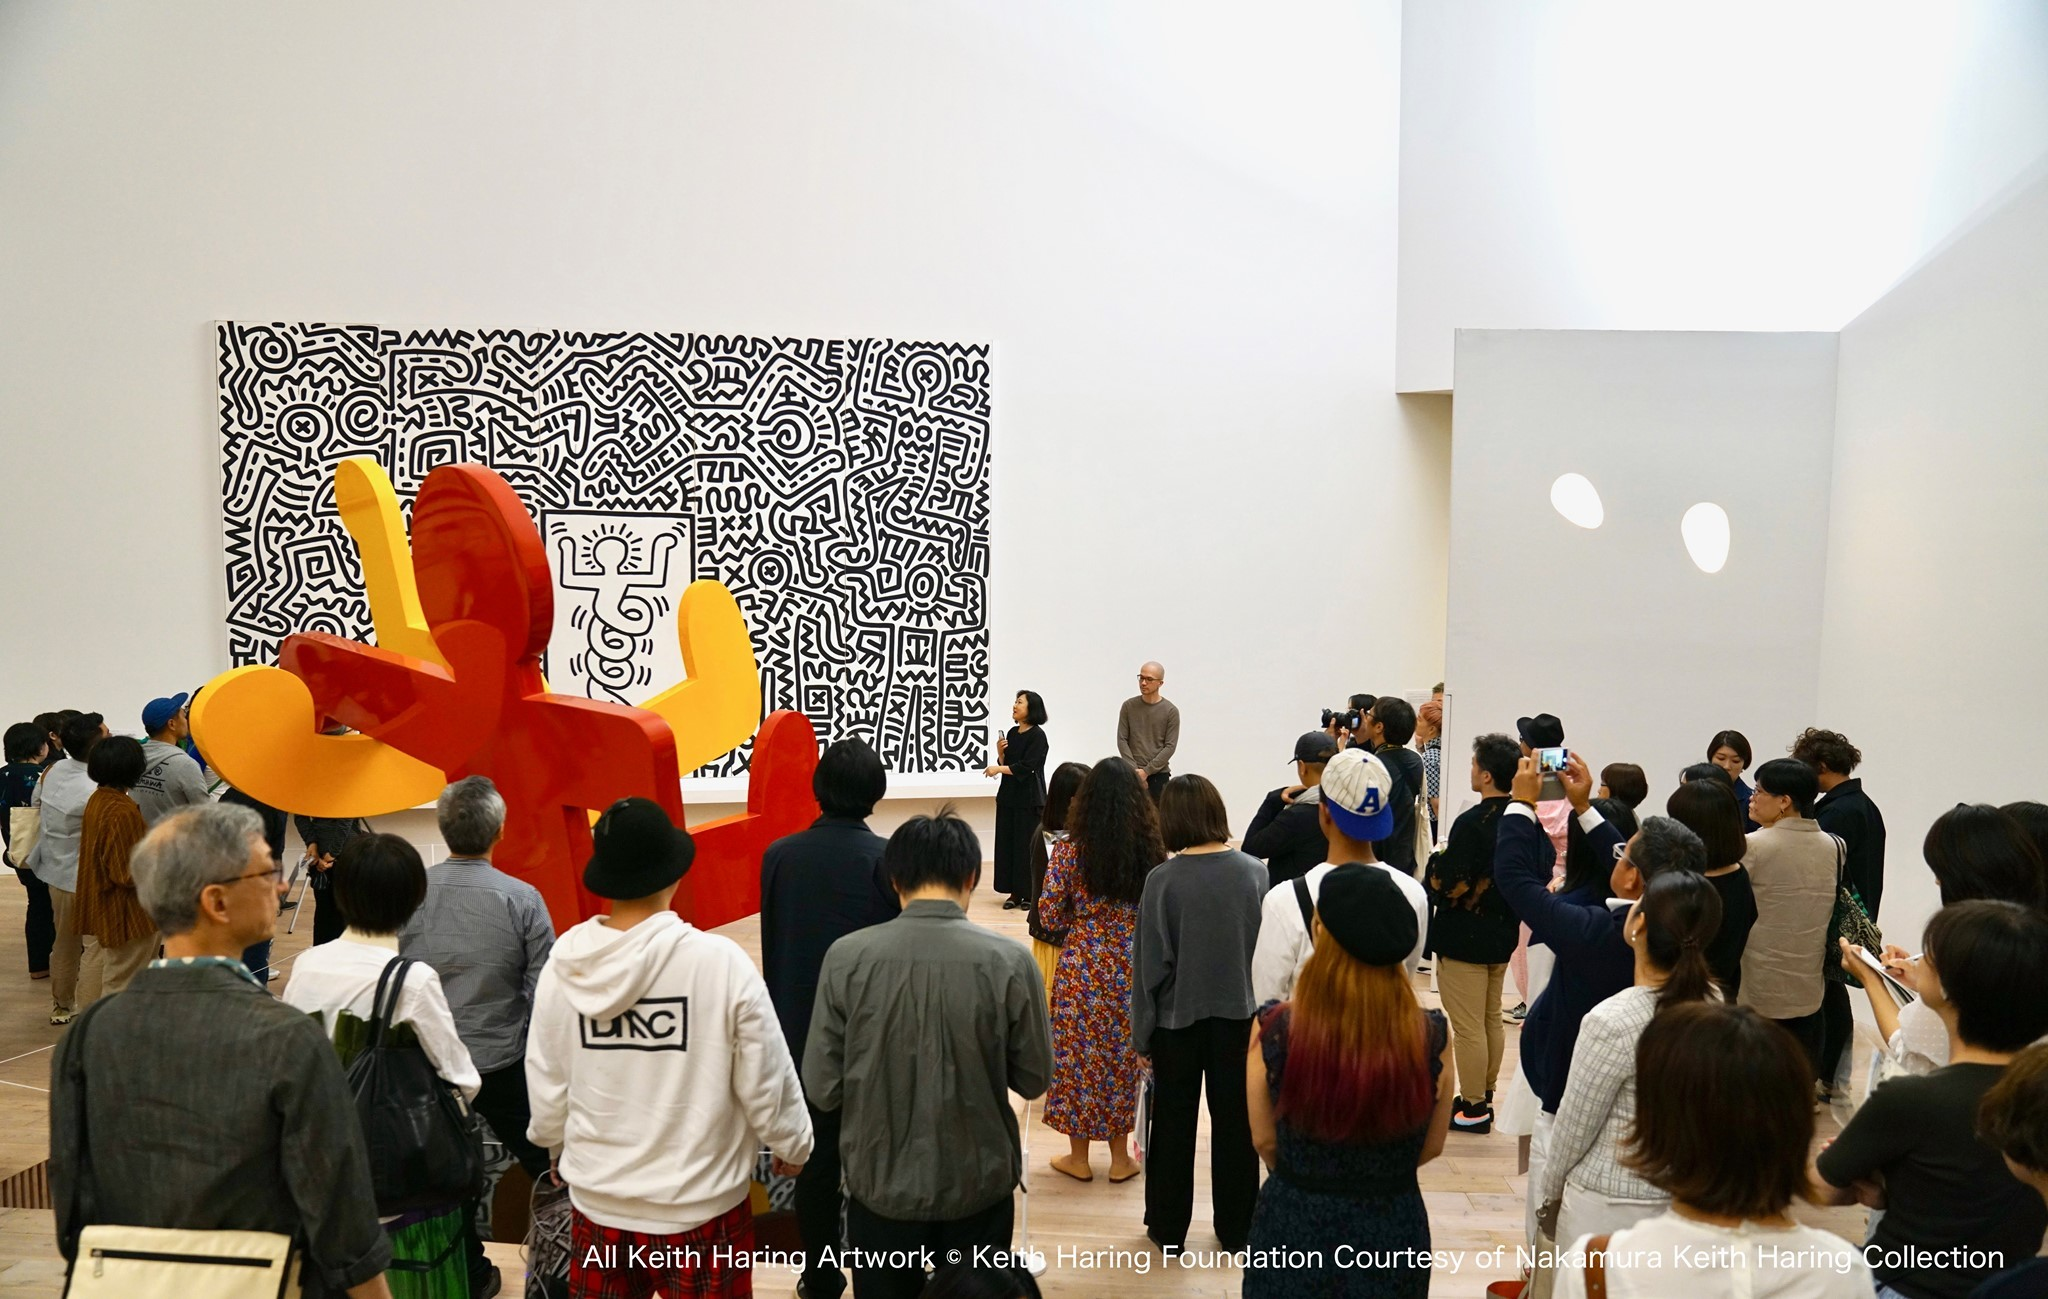 The only museum in the world dedicated to Keith Haring is in Japan